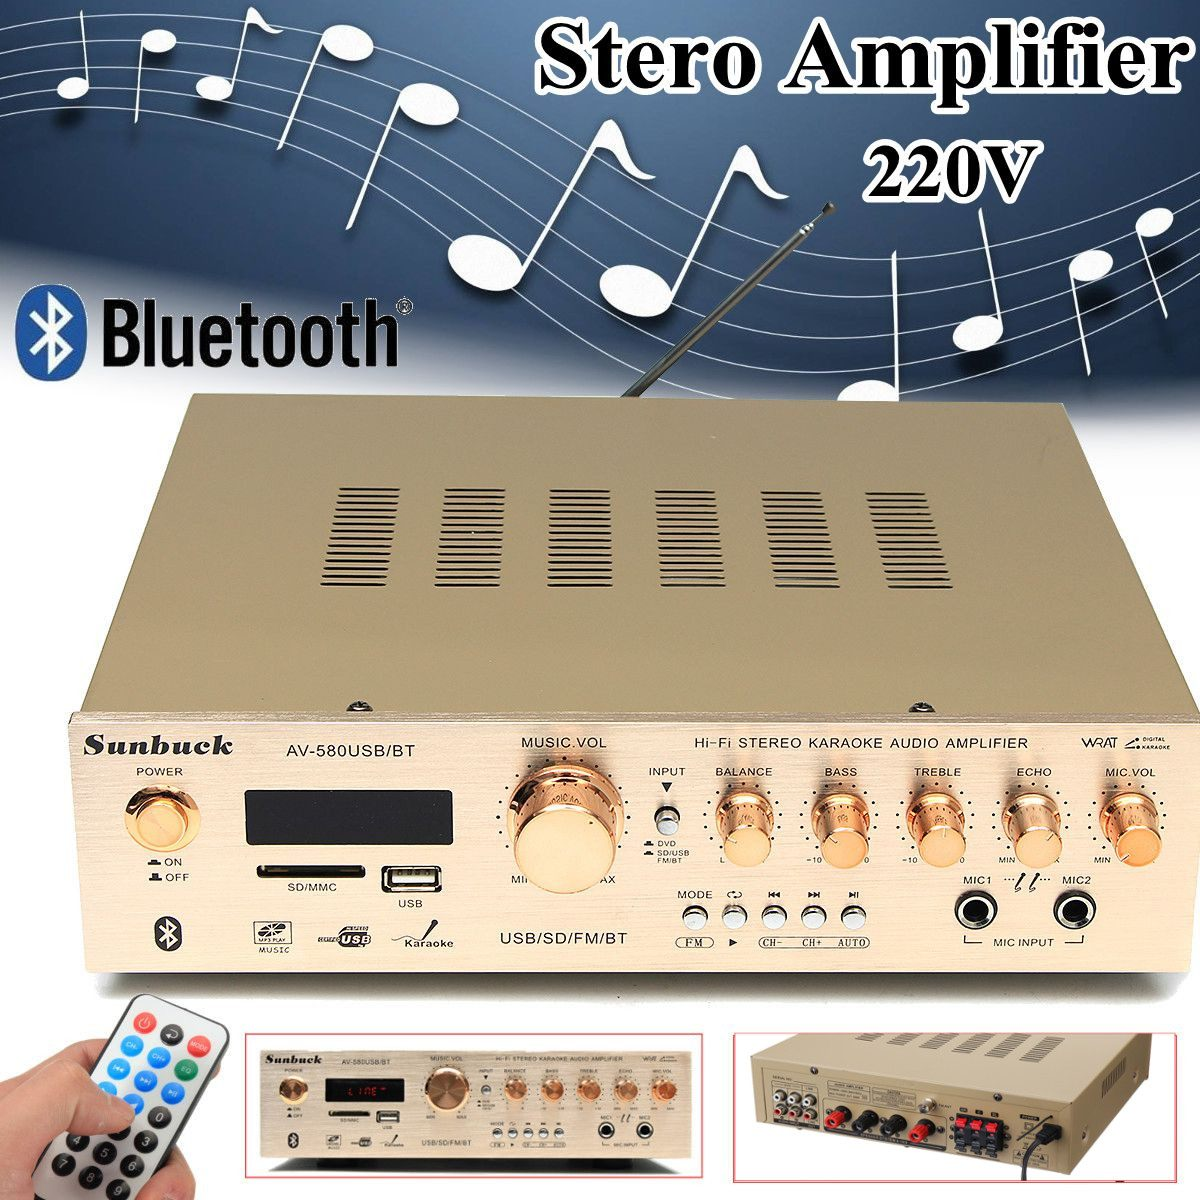 Amplifier Stero Bluetooth-Function 5-Channel 220V 50W Play USB with Card Support-Fm-Radio